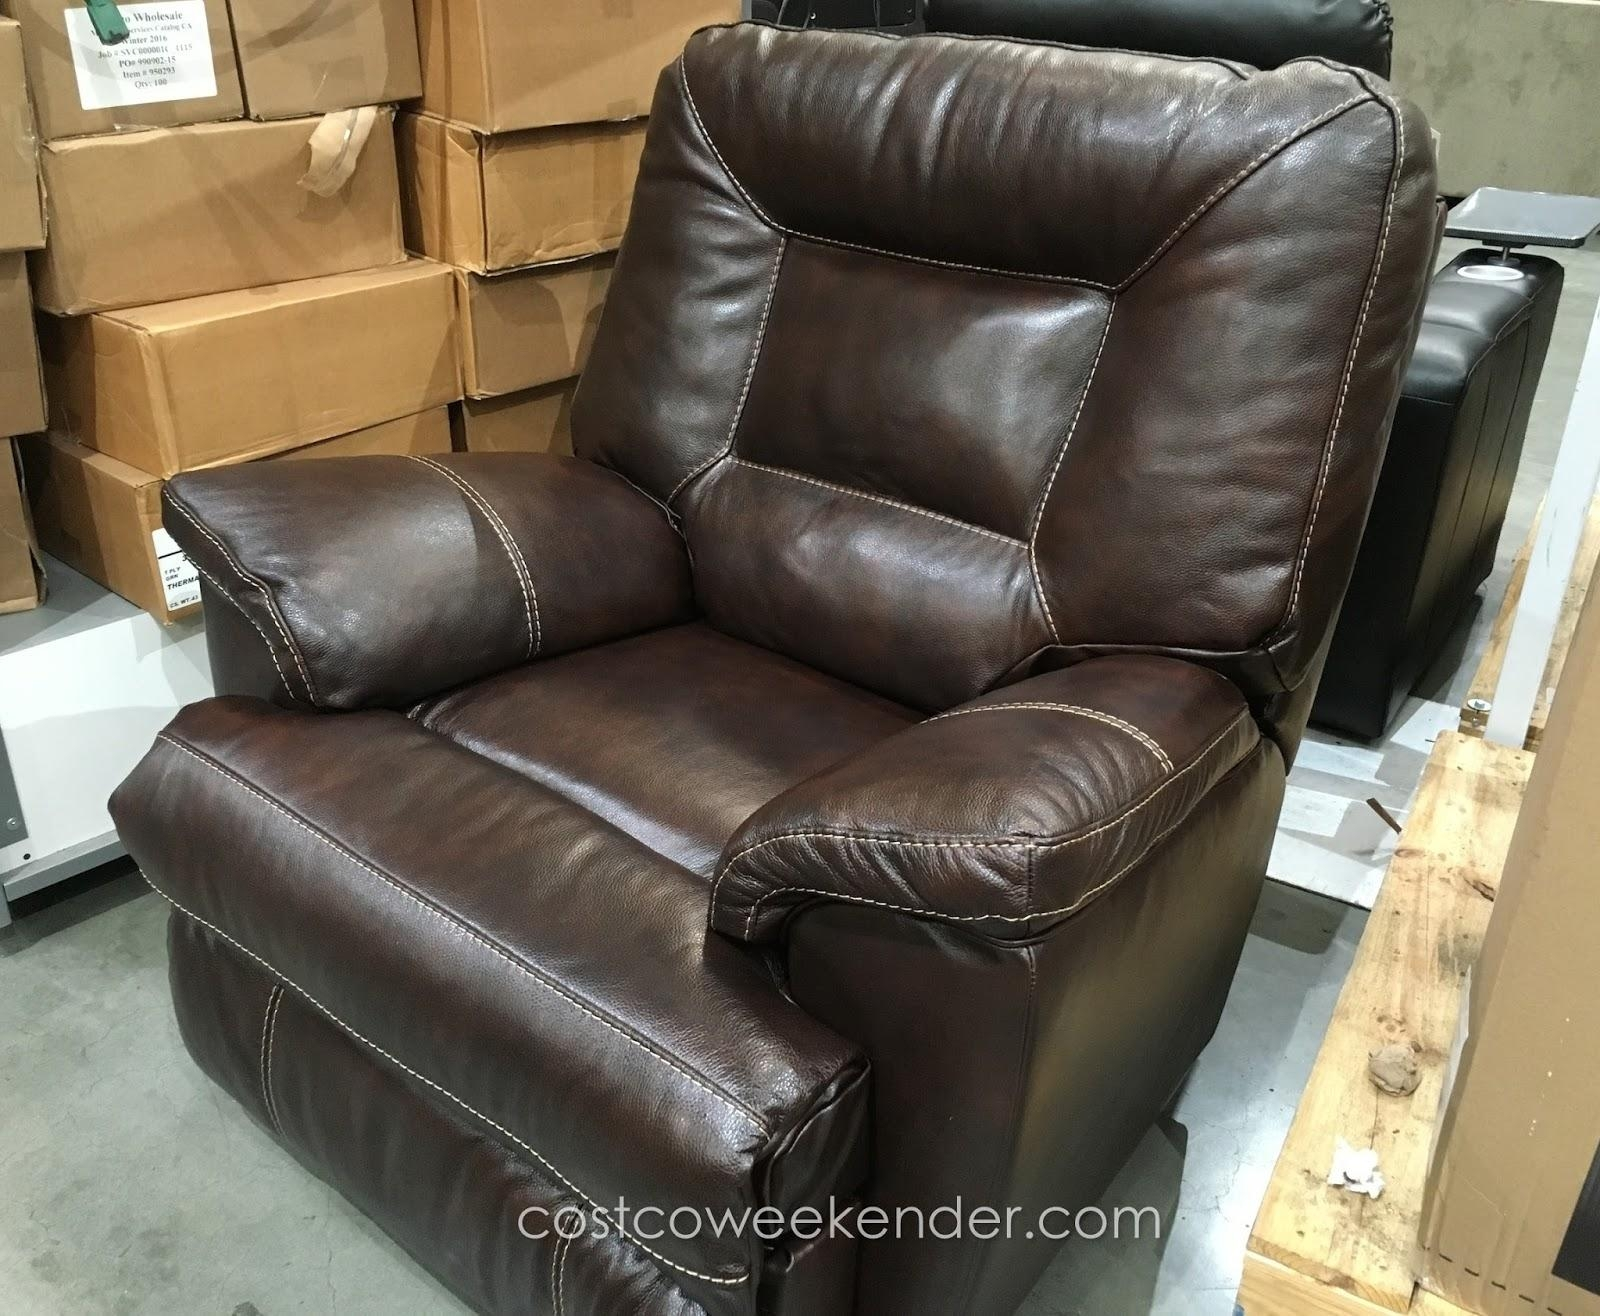 Furniture & Sofa: Enjoy Your Holiday With Costco Home Theater Intended For Berkline Leather Recliner Sofas (Image 5 of 20)